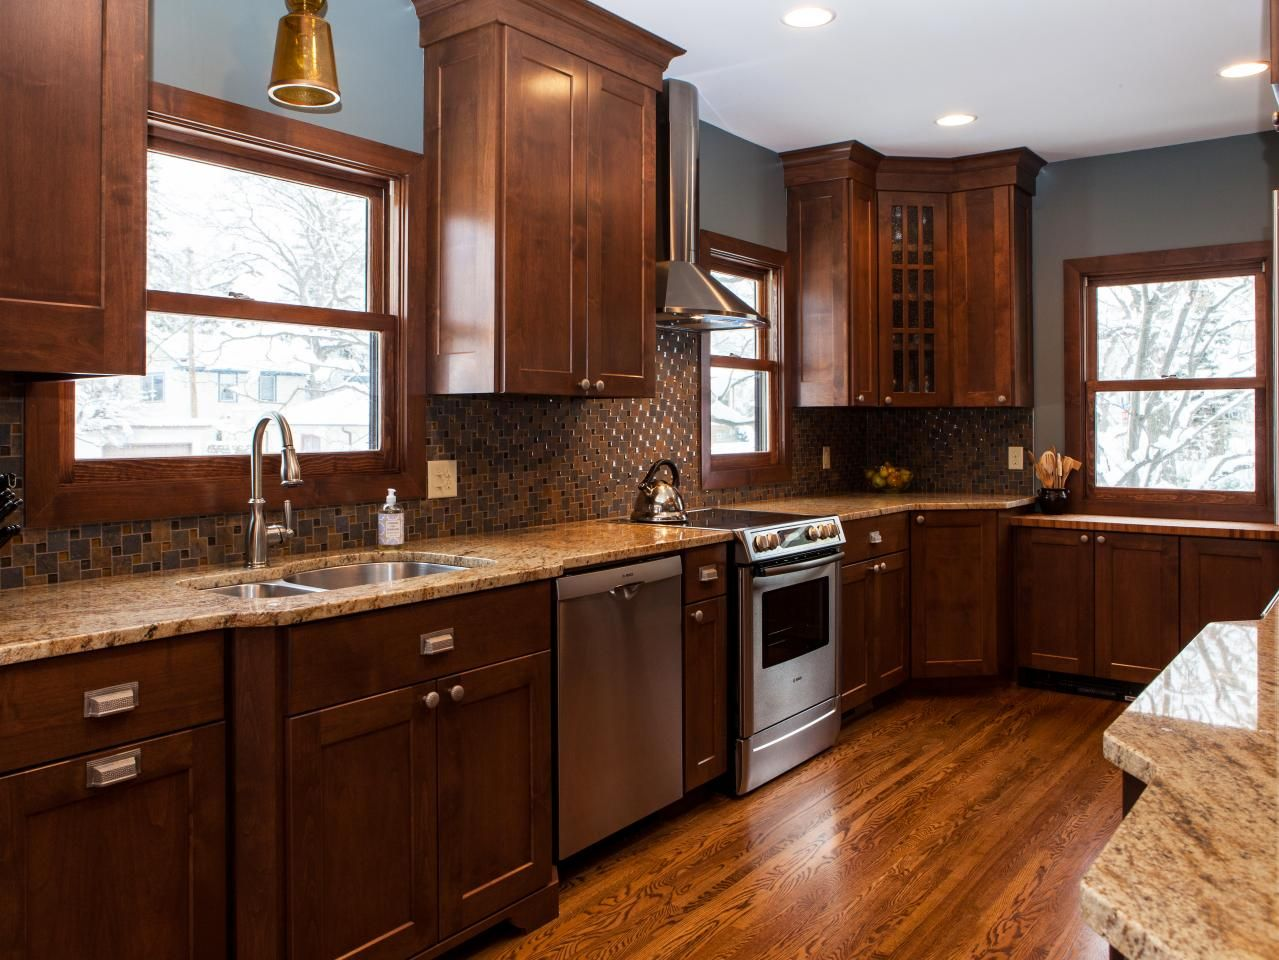 Pictures Of Kitchen Backsplash Ideas From Countertop Hgtv And - How to get hgtv to remodel my kitchen for free